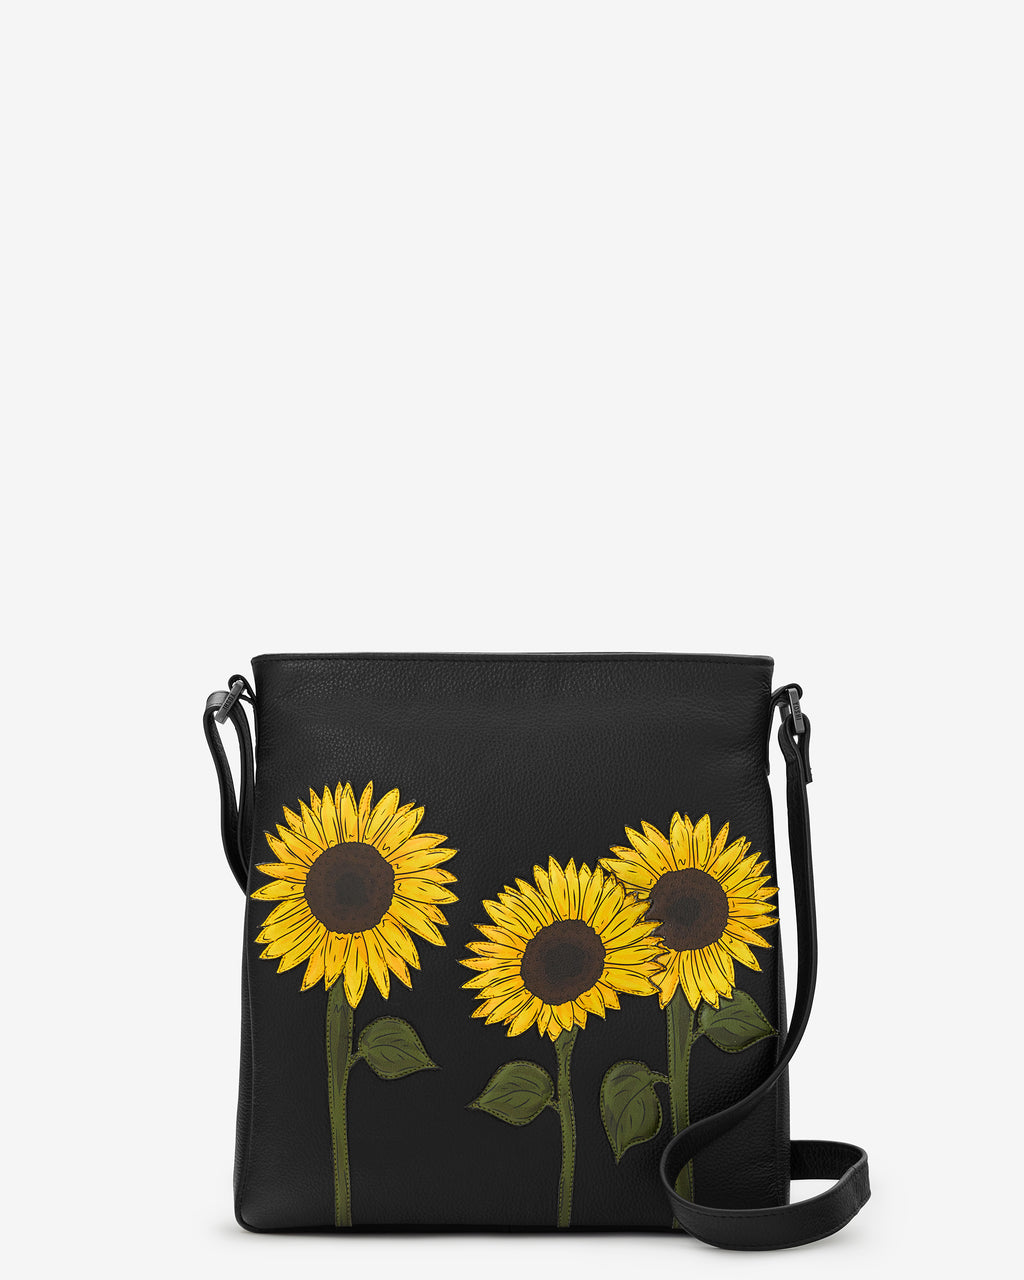 Sunflowers Leather Cross Body Bag